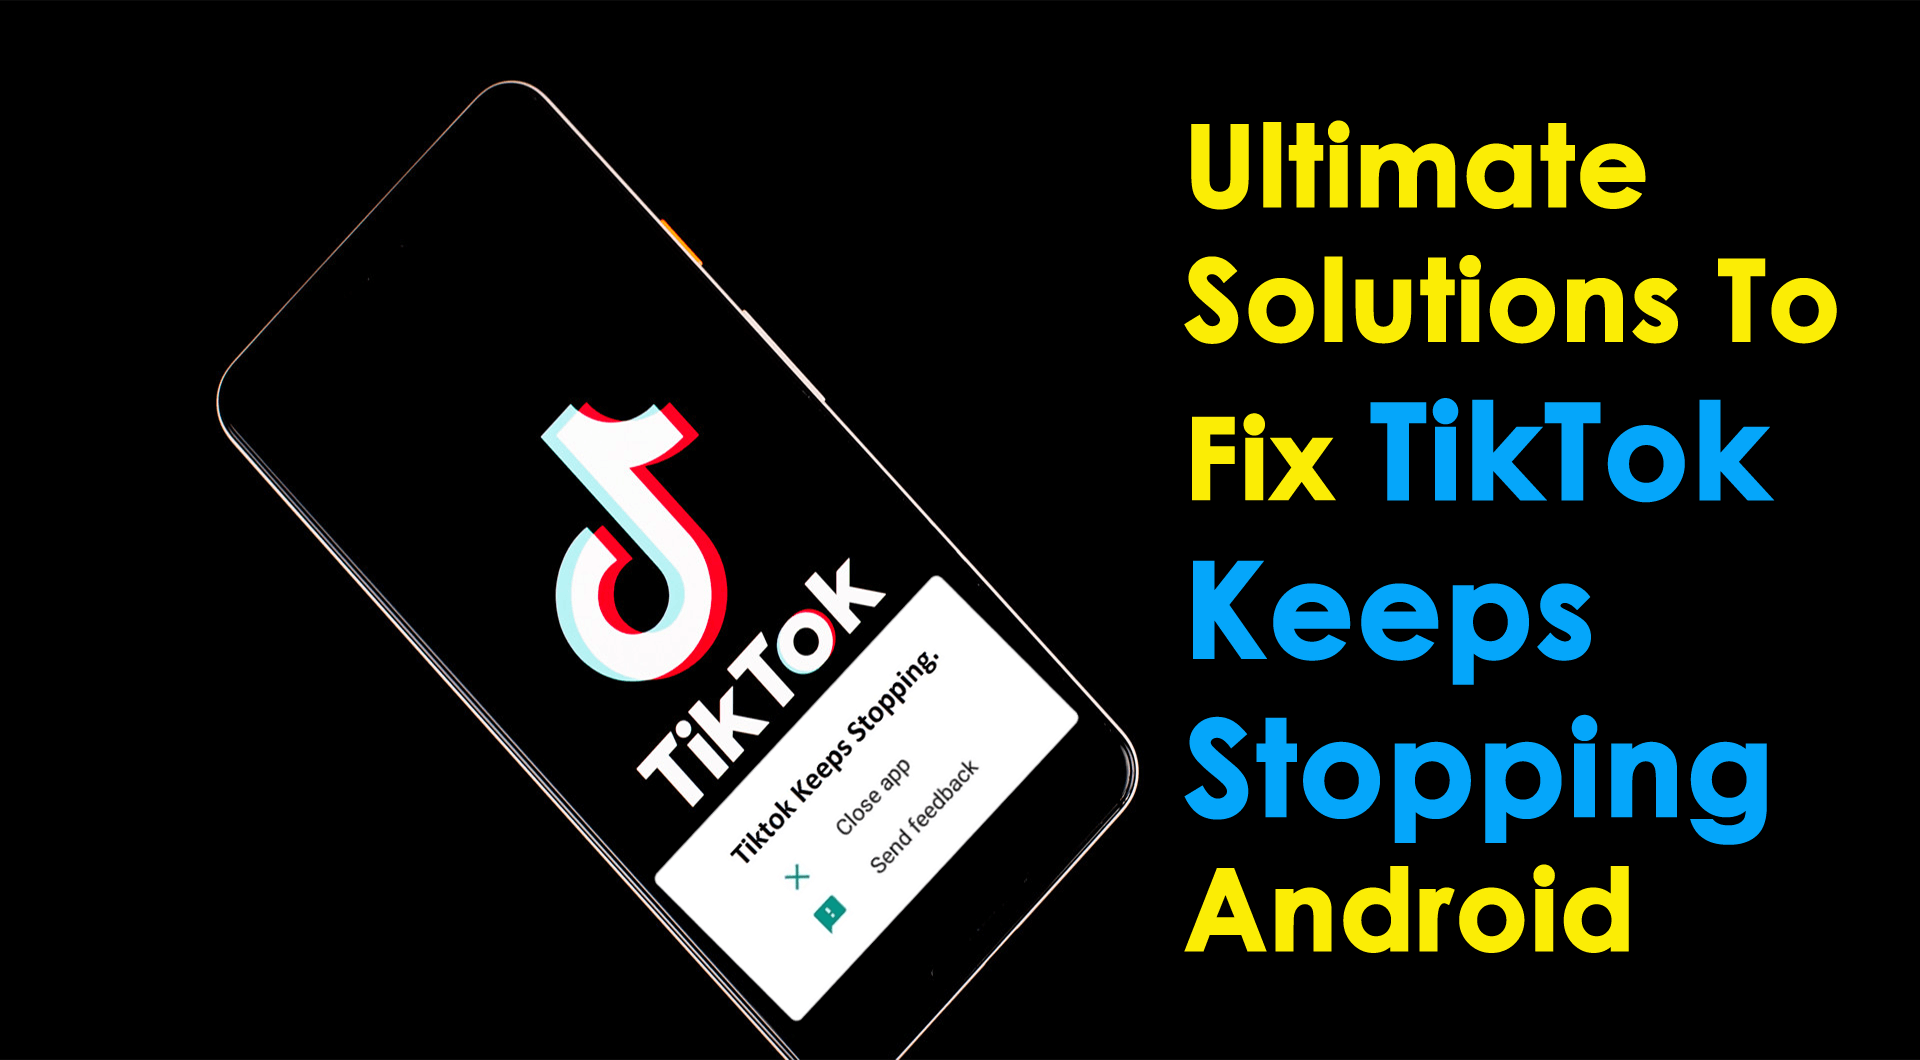 Fix TikTok Keeps Stopping Android